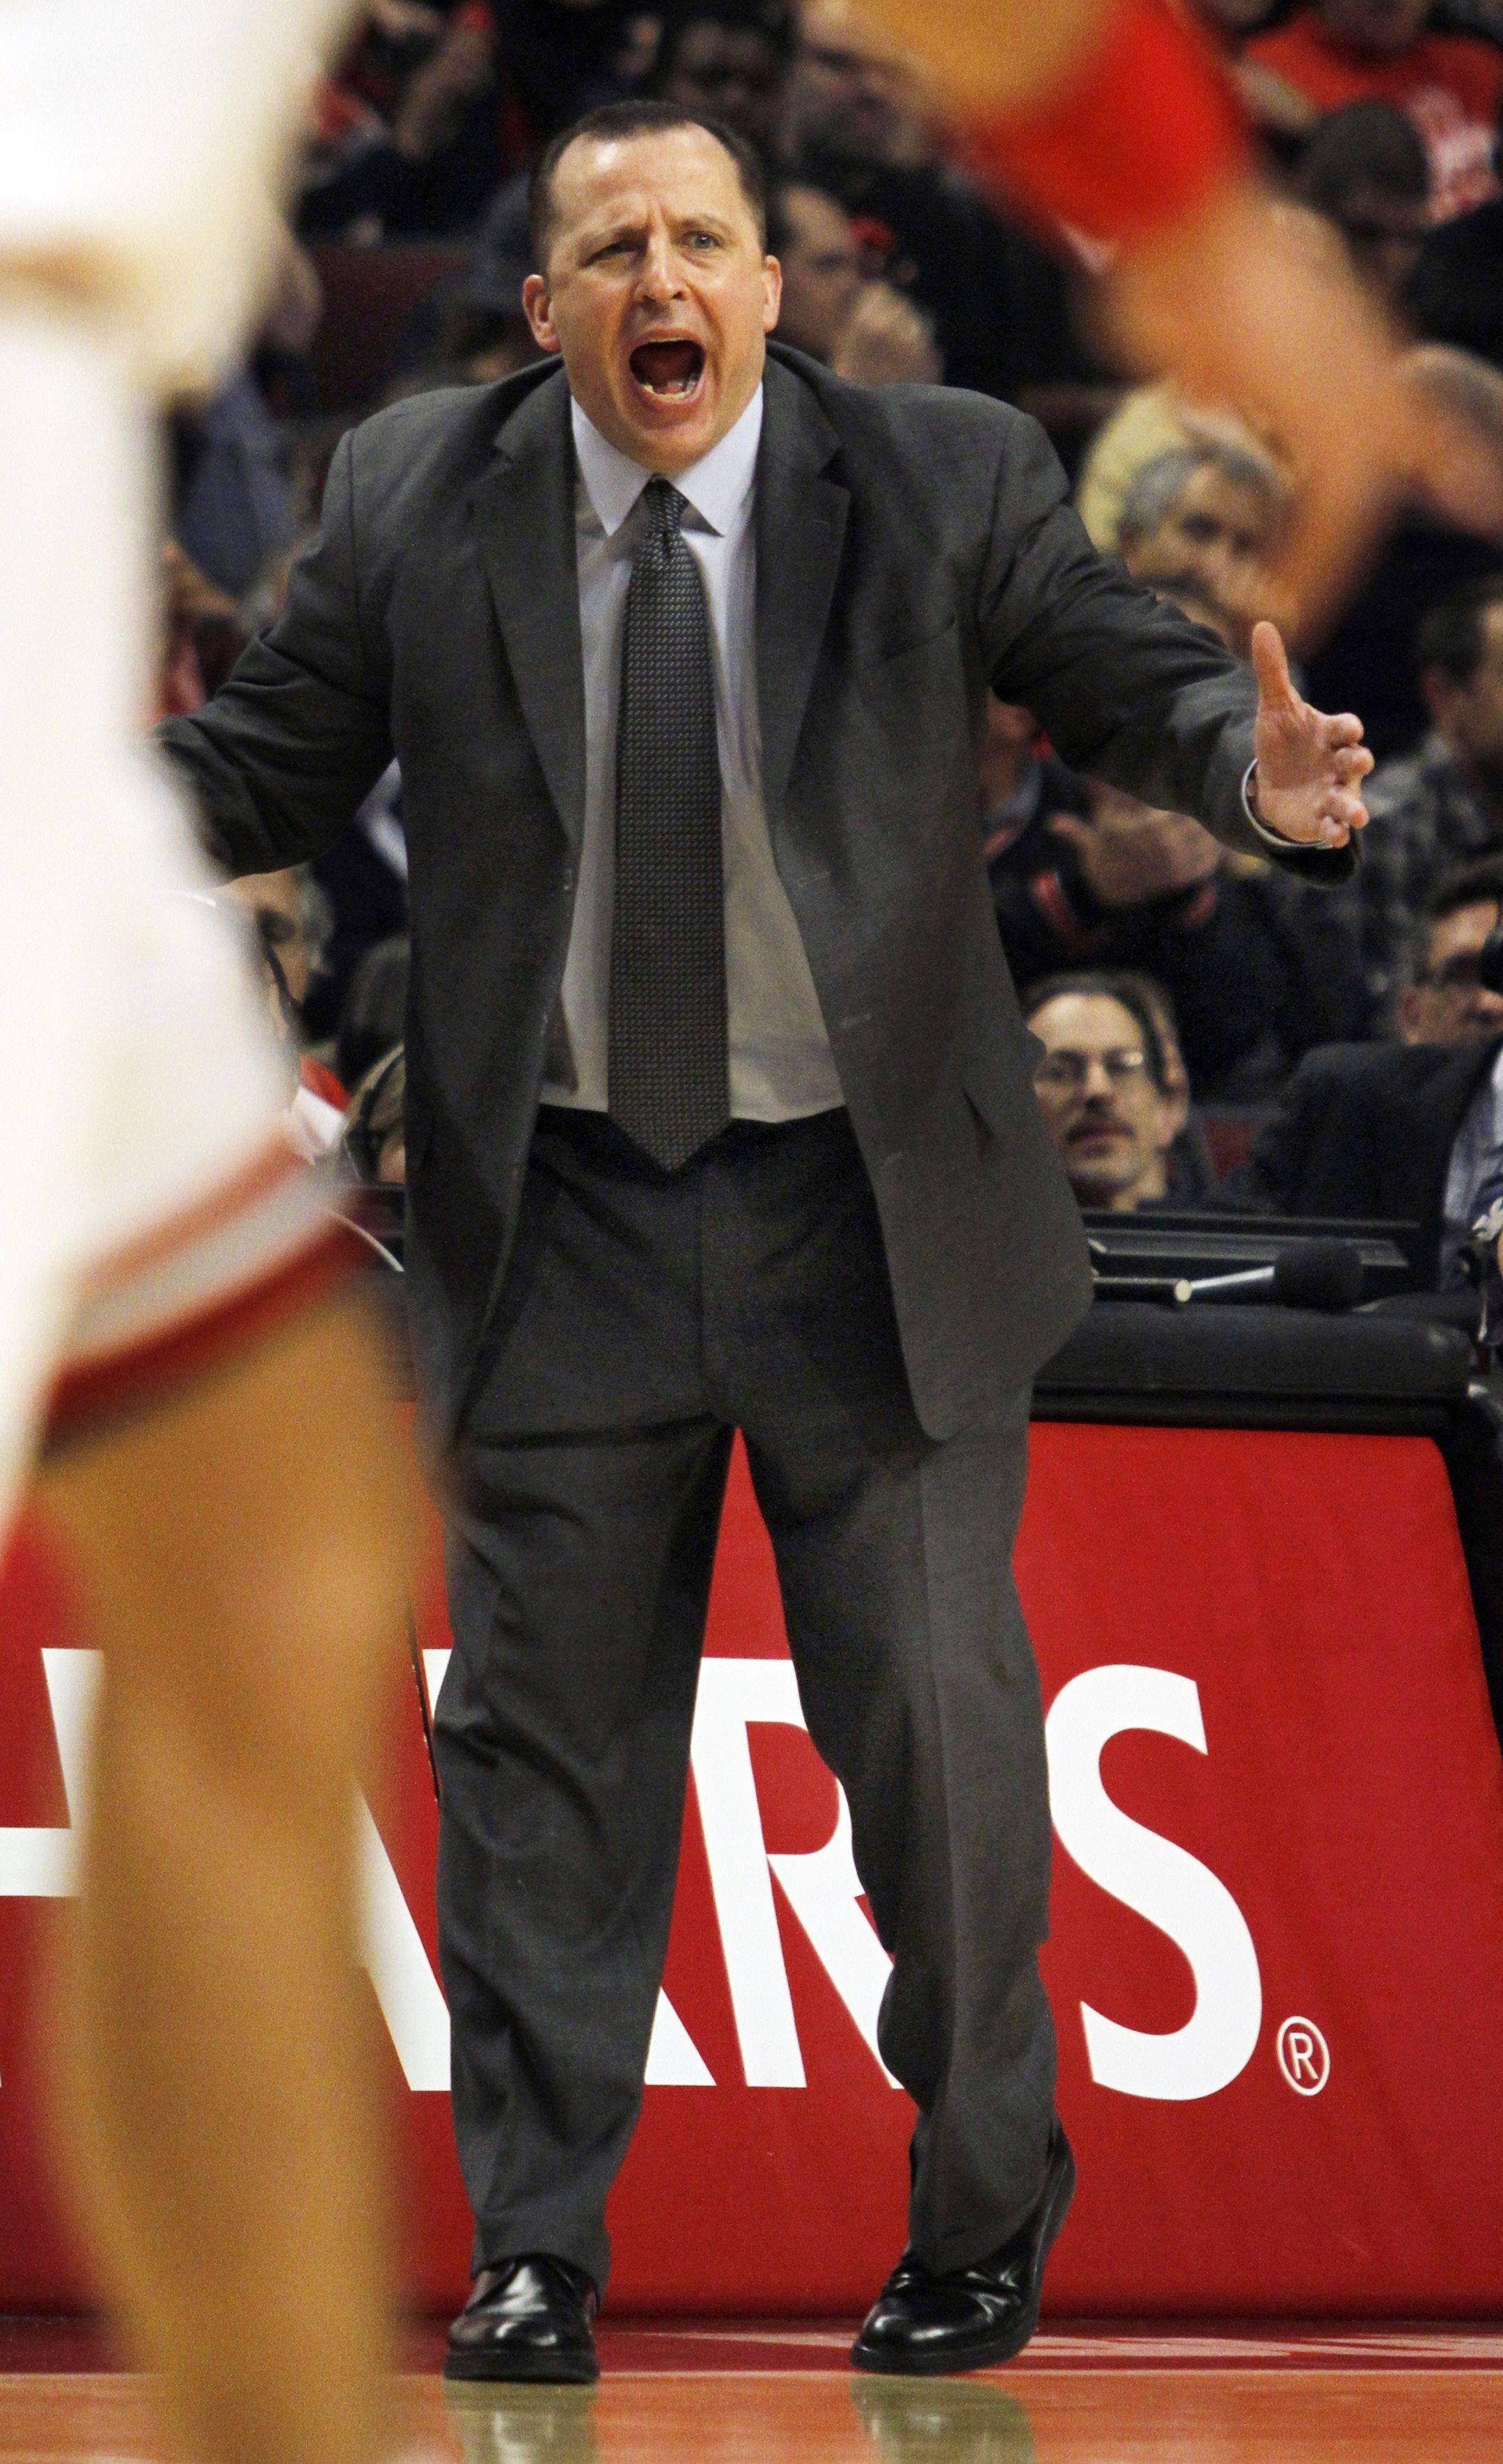 Bulls coach Tom Thibodeau so far is making the most of his long-awaited opportunity.